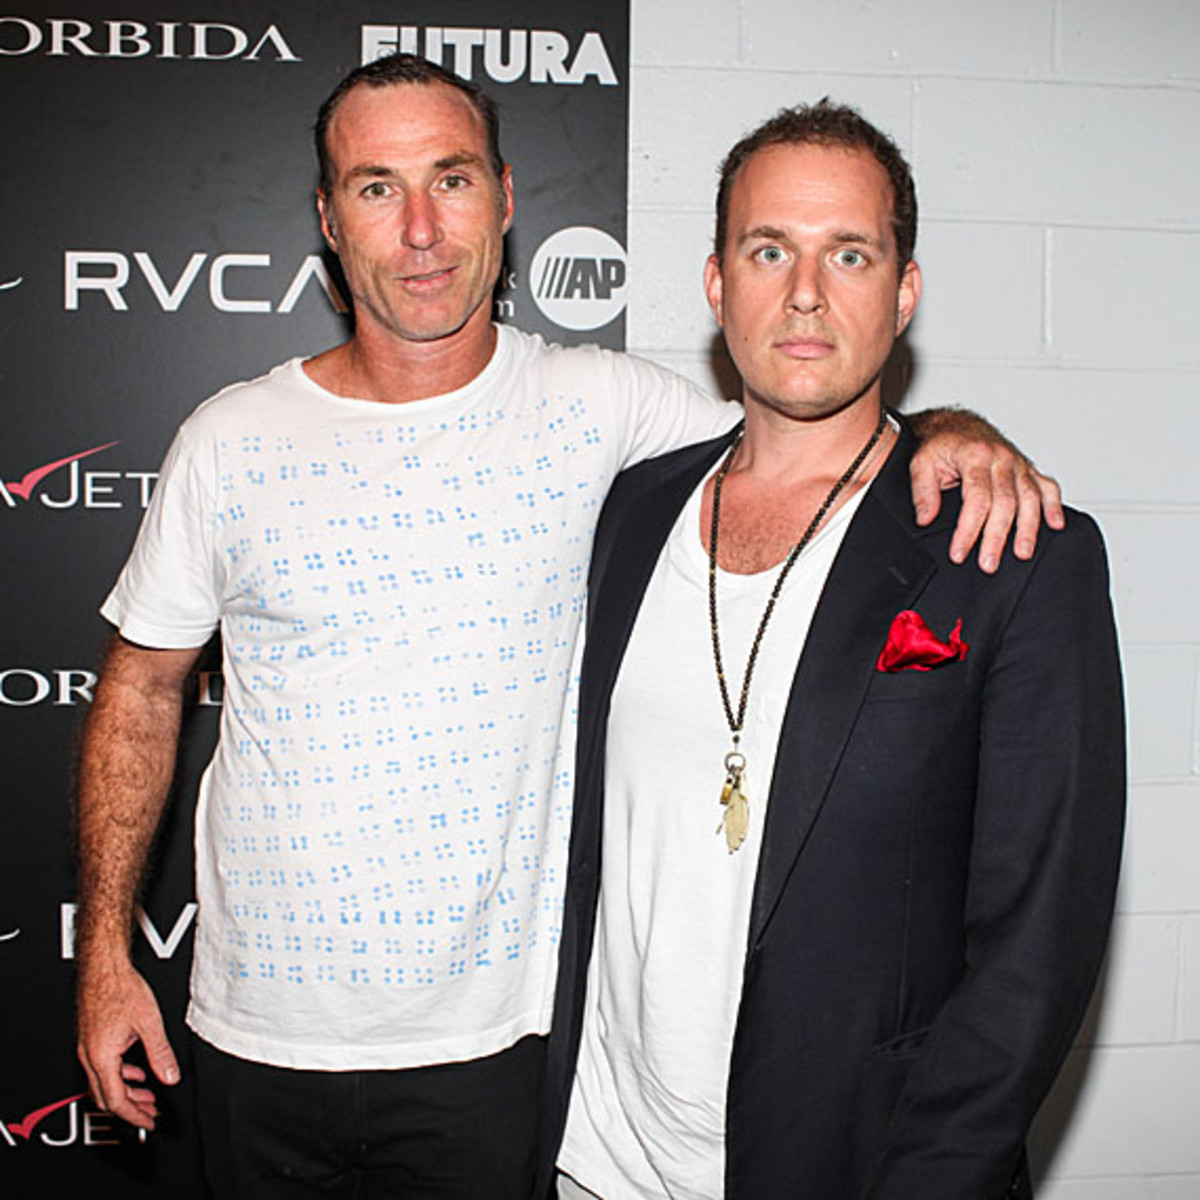 FUTURA exhibition opening presented by Andy Valmorbida and PM Tenore with support from Bombardier Aerospace, RVCA Artist Network Program and VistaJet